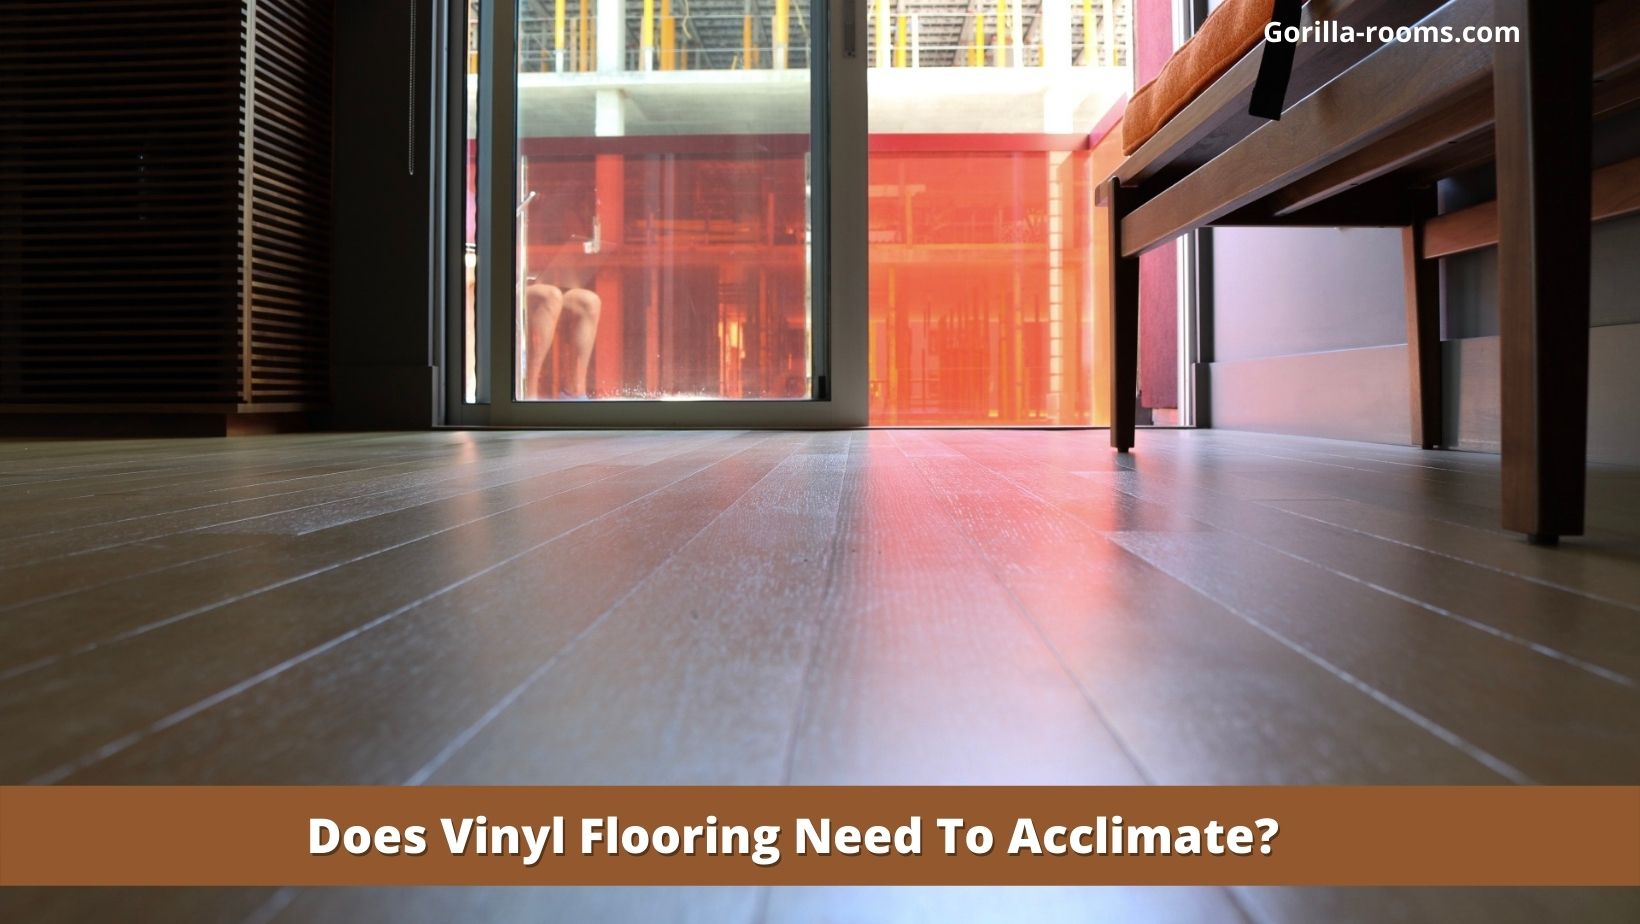 Does Vinyl Flooring Need To Acclimate